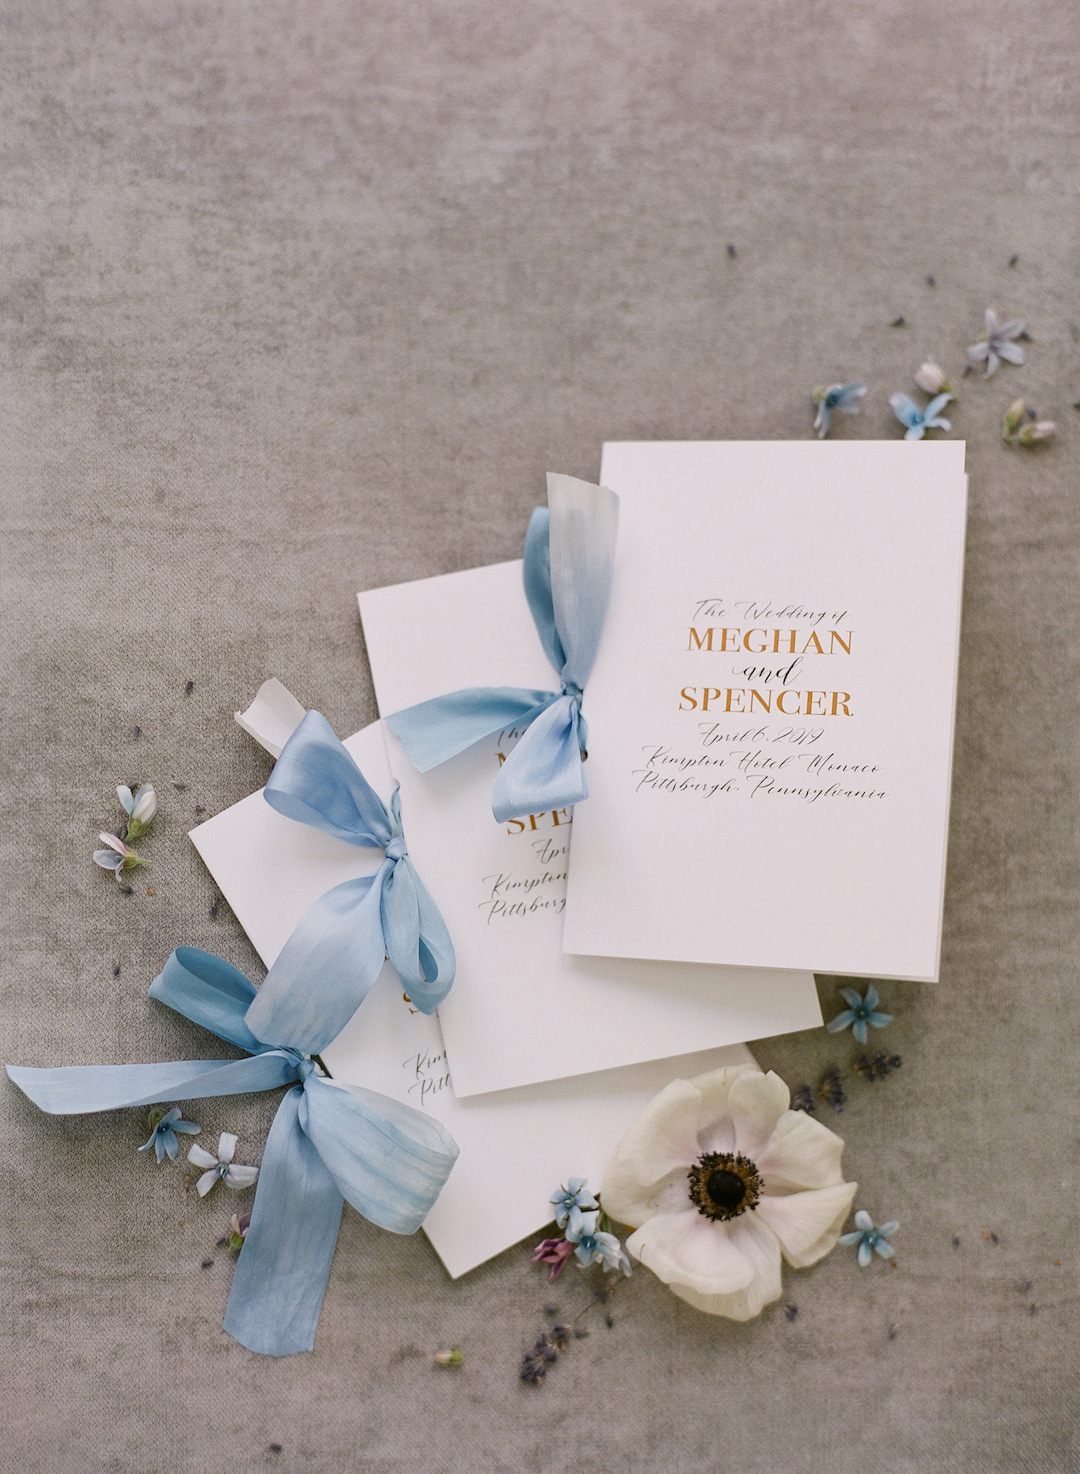 Elegant wedding ceremony programs for Pittsburgh wedding at Hotel Monaco planned by Exhale Events. Find more modern wedding ideas at exhale-events.com!